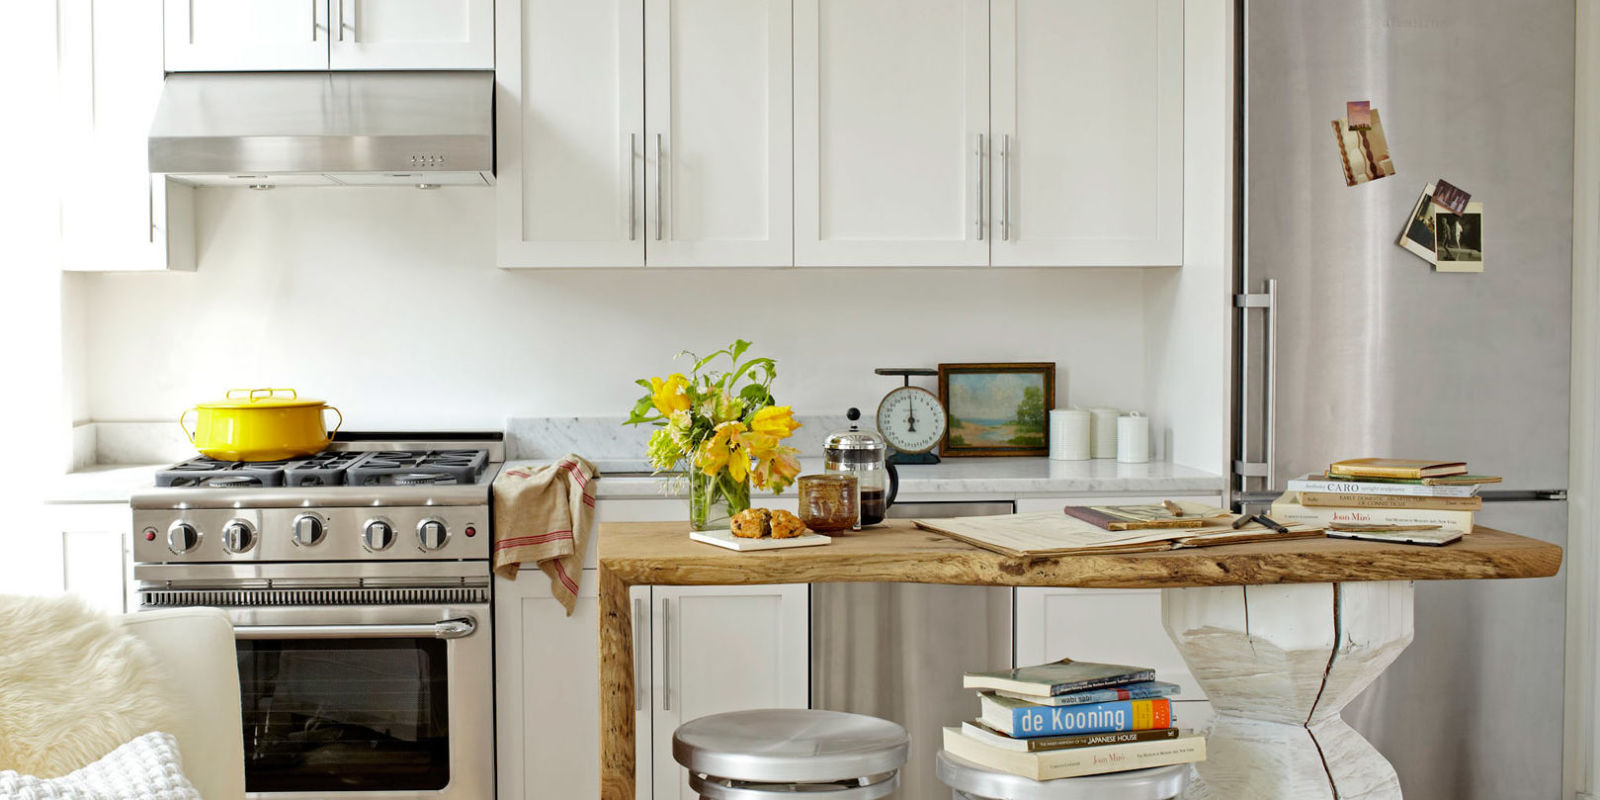 17 Best Small Kitchen Design Ideas  Decorating Solutions for Small Kitchens